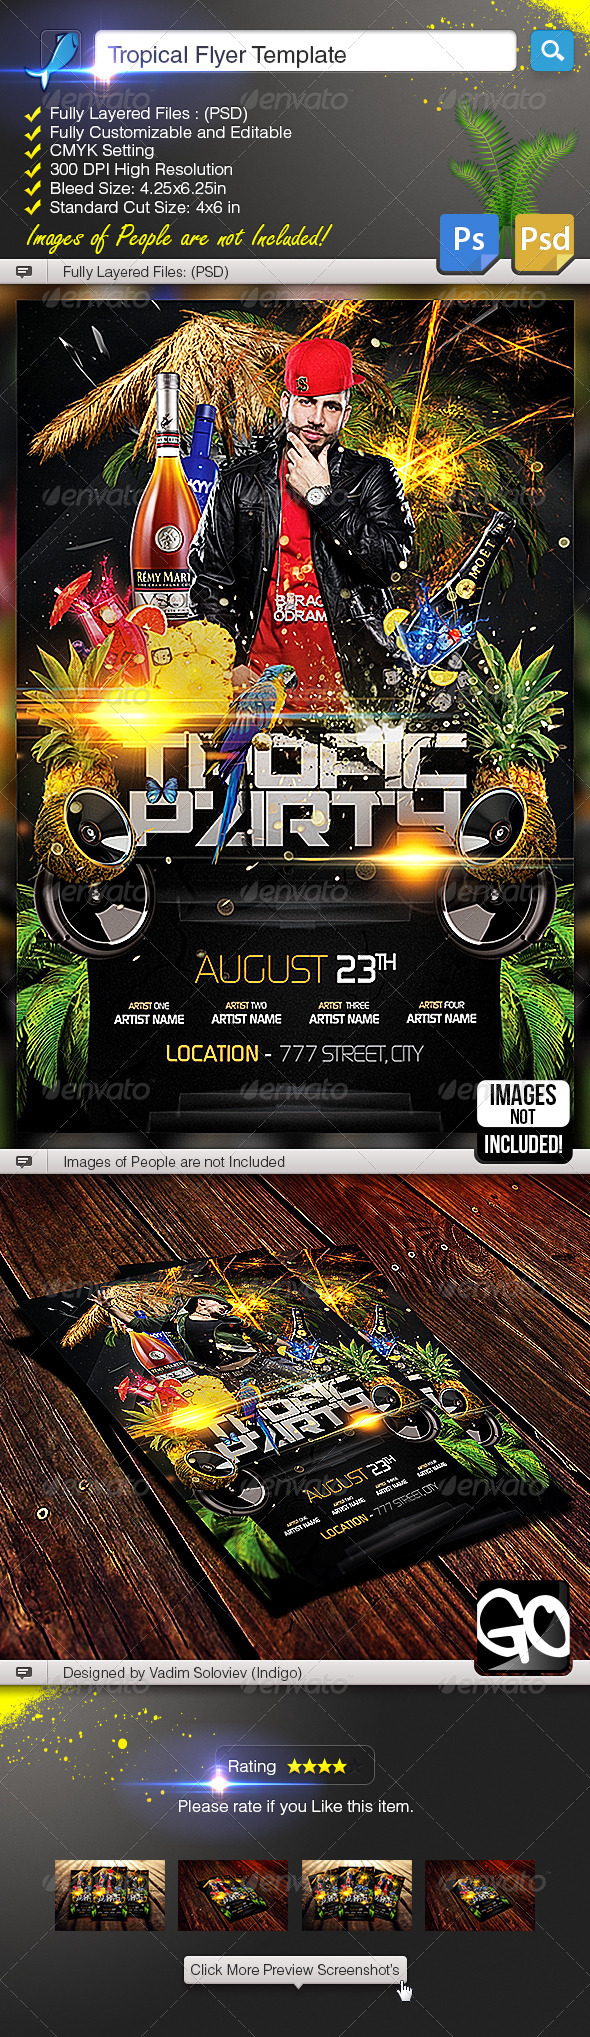 GraphicRiver Tropical Flyer Template 5379160